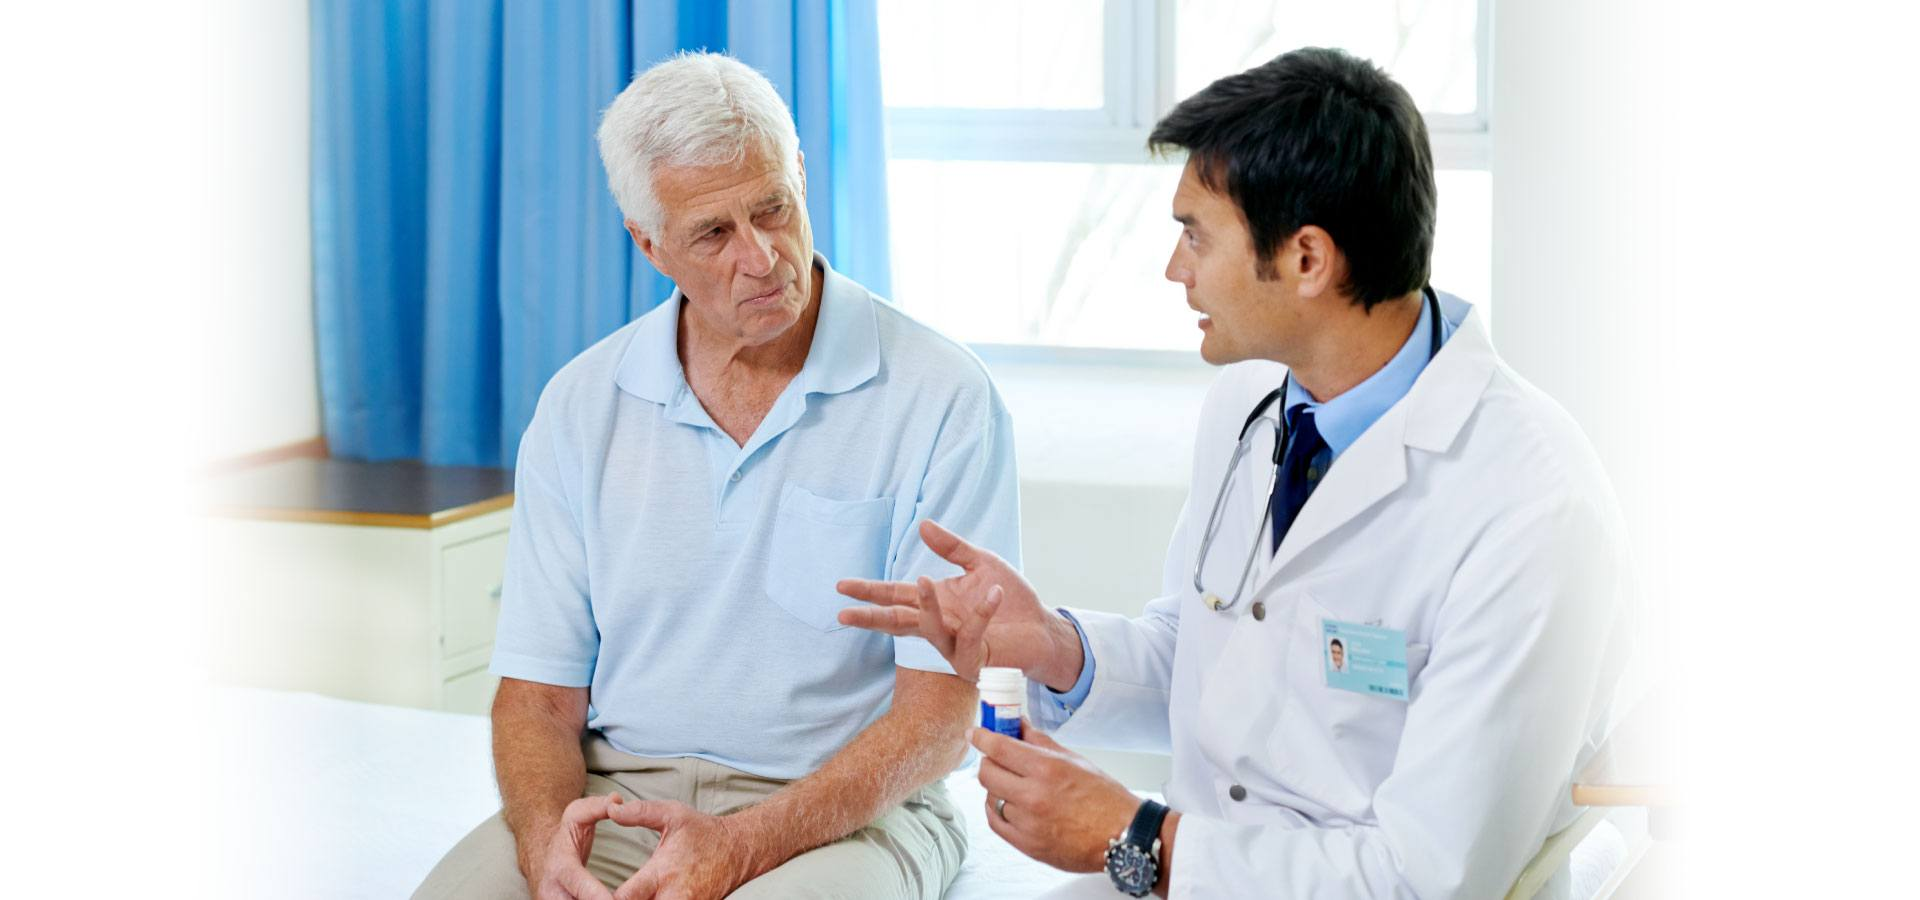 doctor speaking to elderly male patient